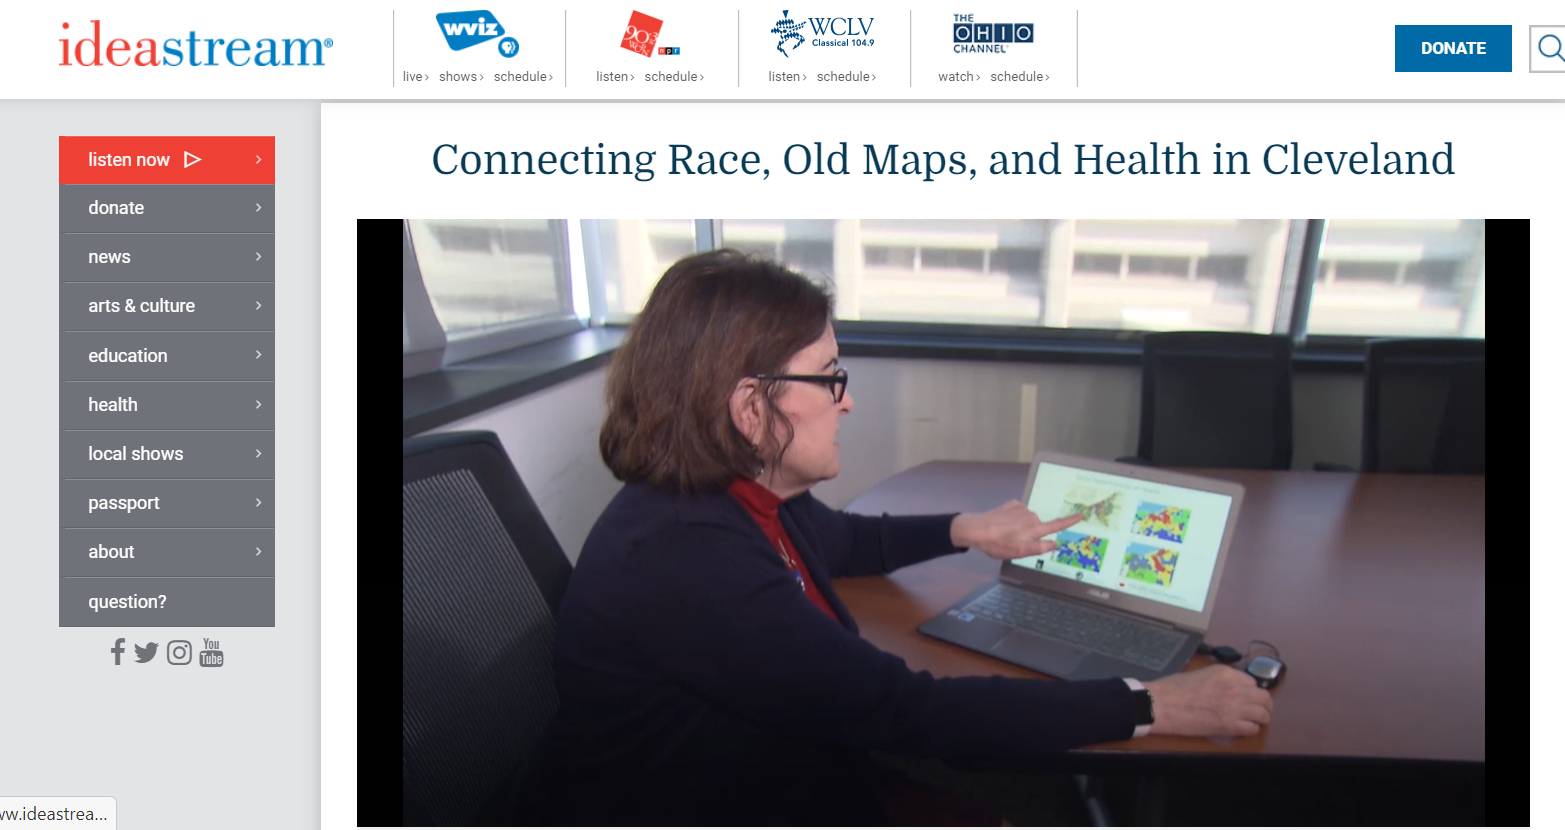 Interested in Digital Health Equity Consulting?